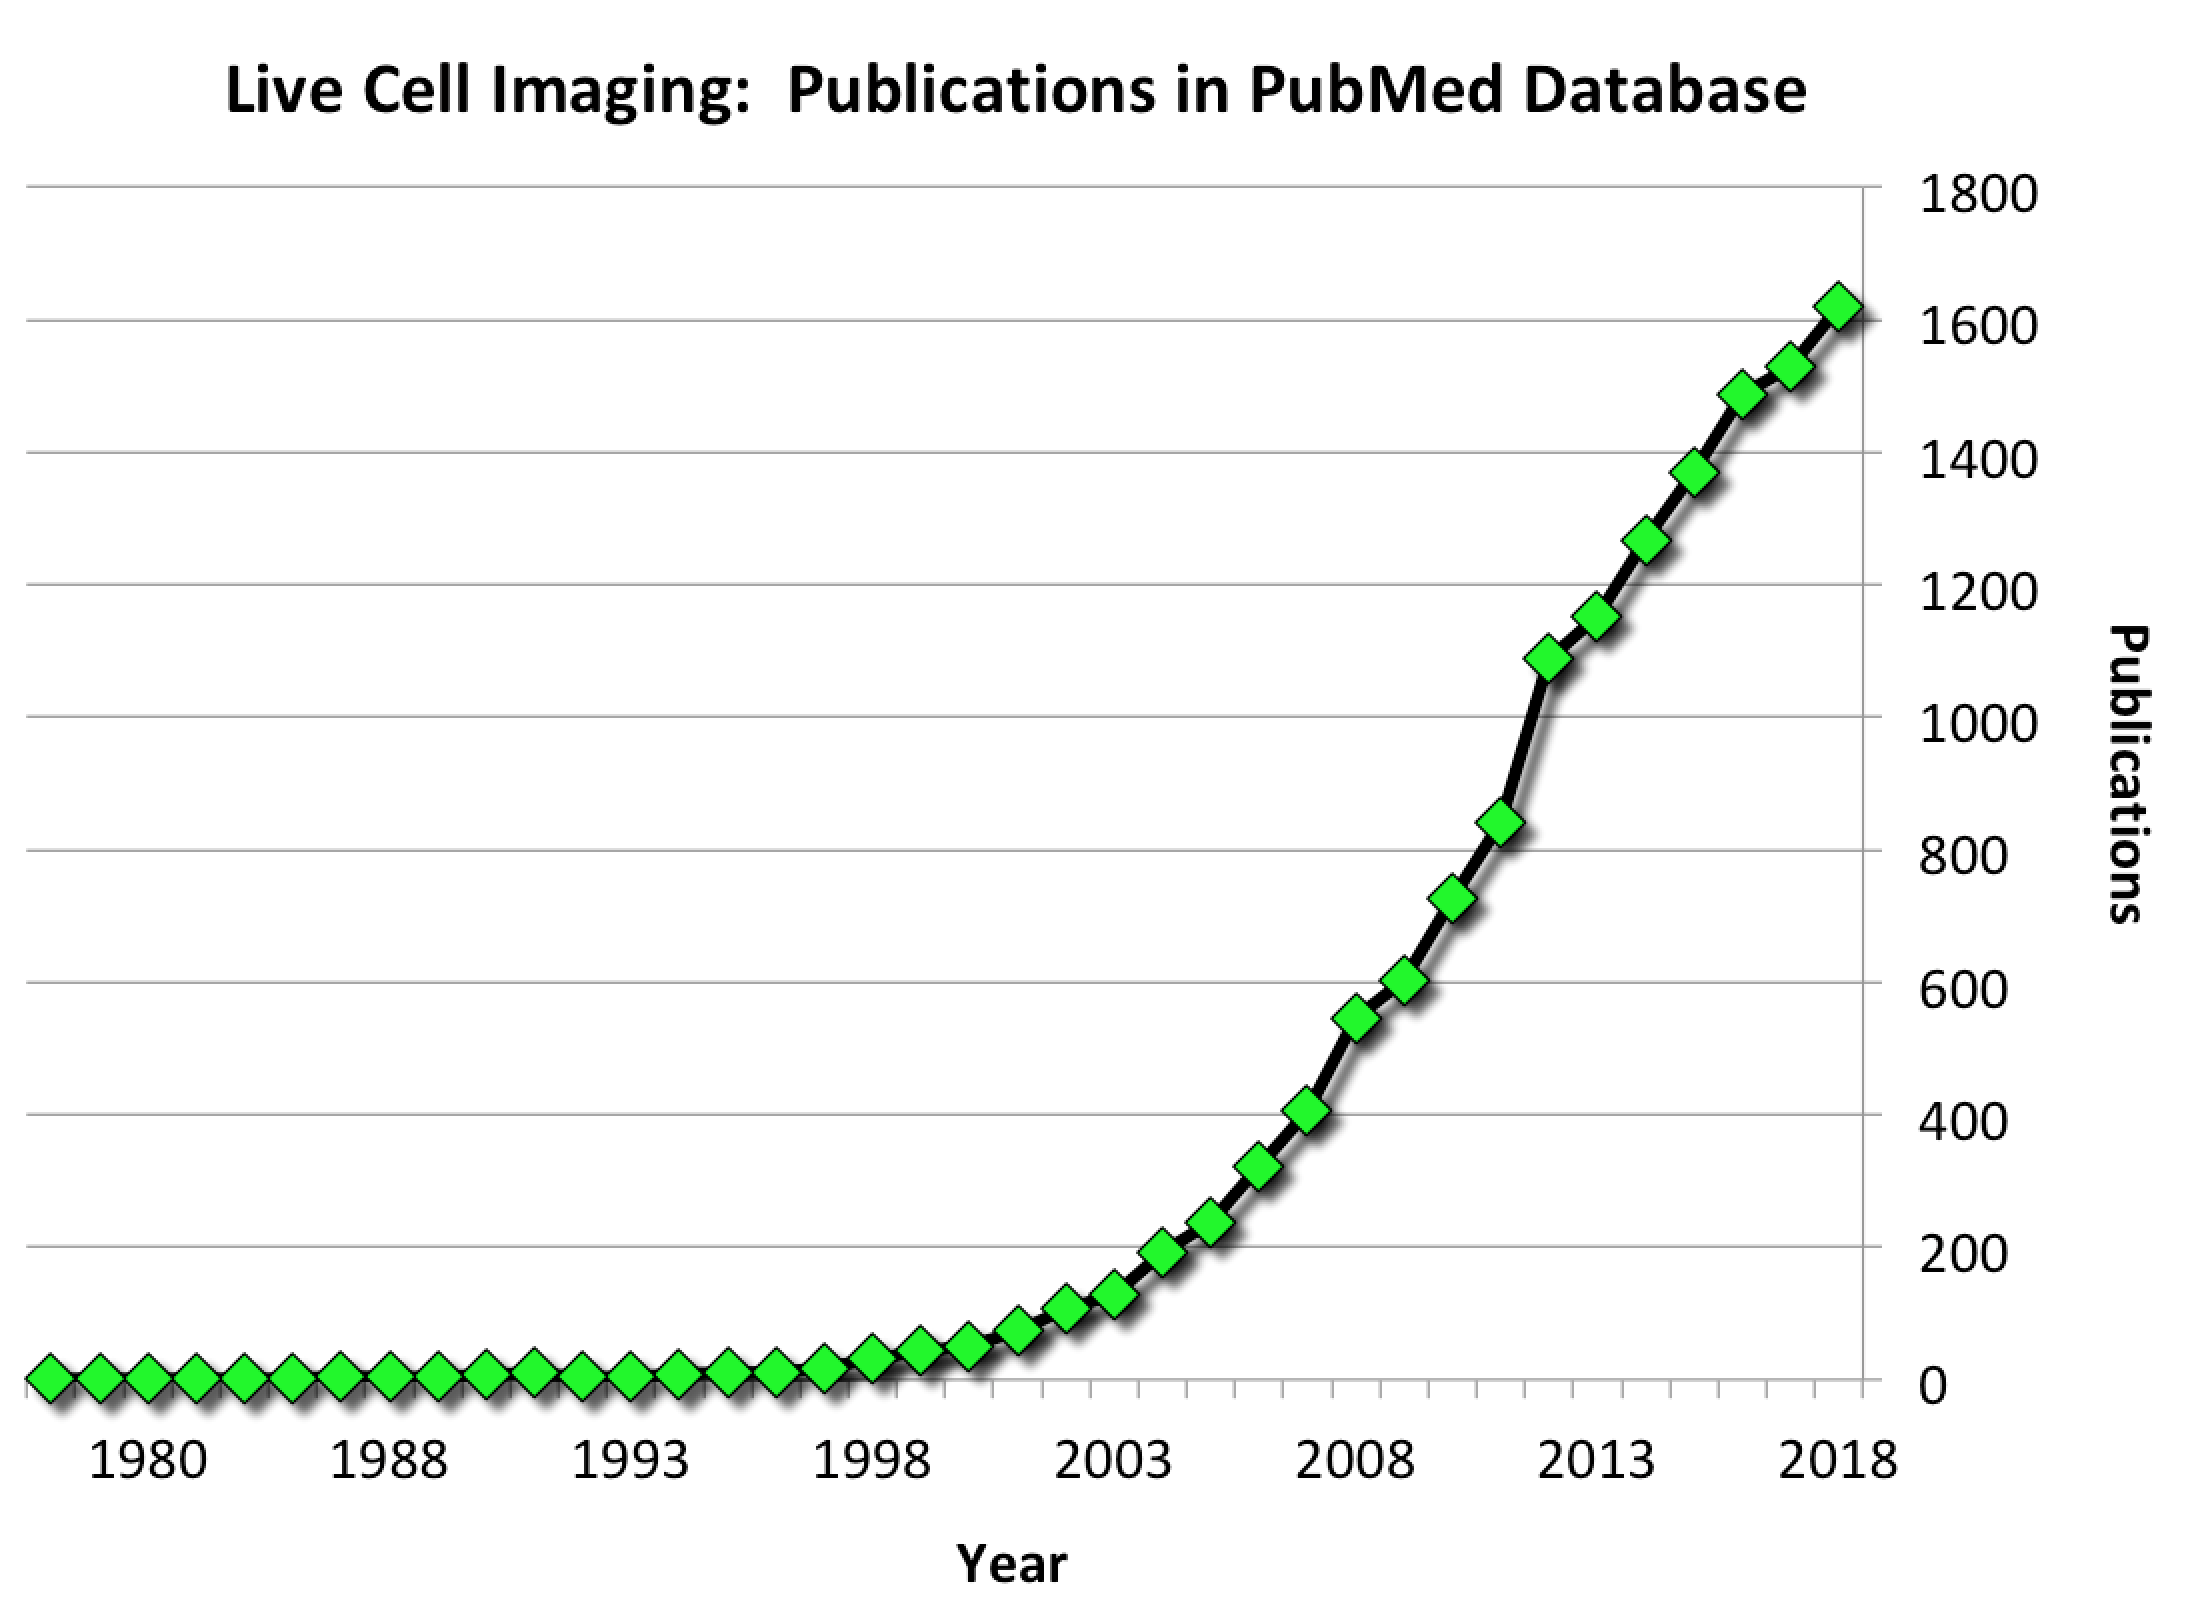 Increasing number of Live Cell Imaging publications